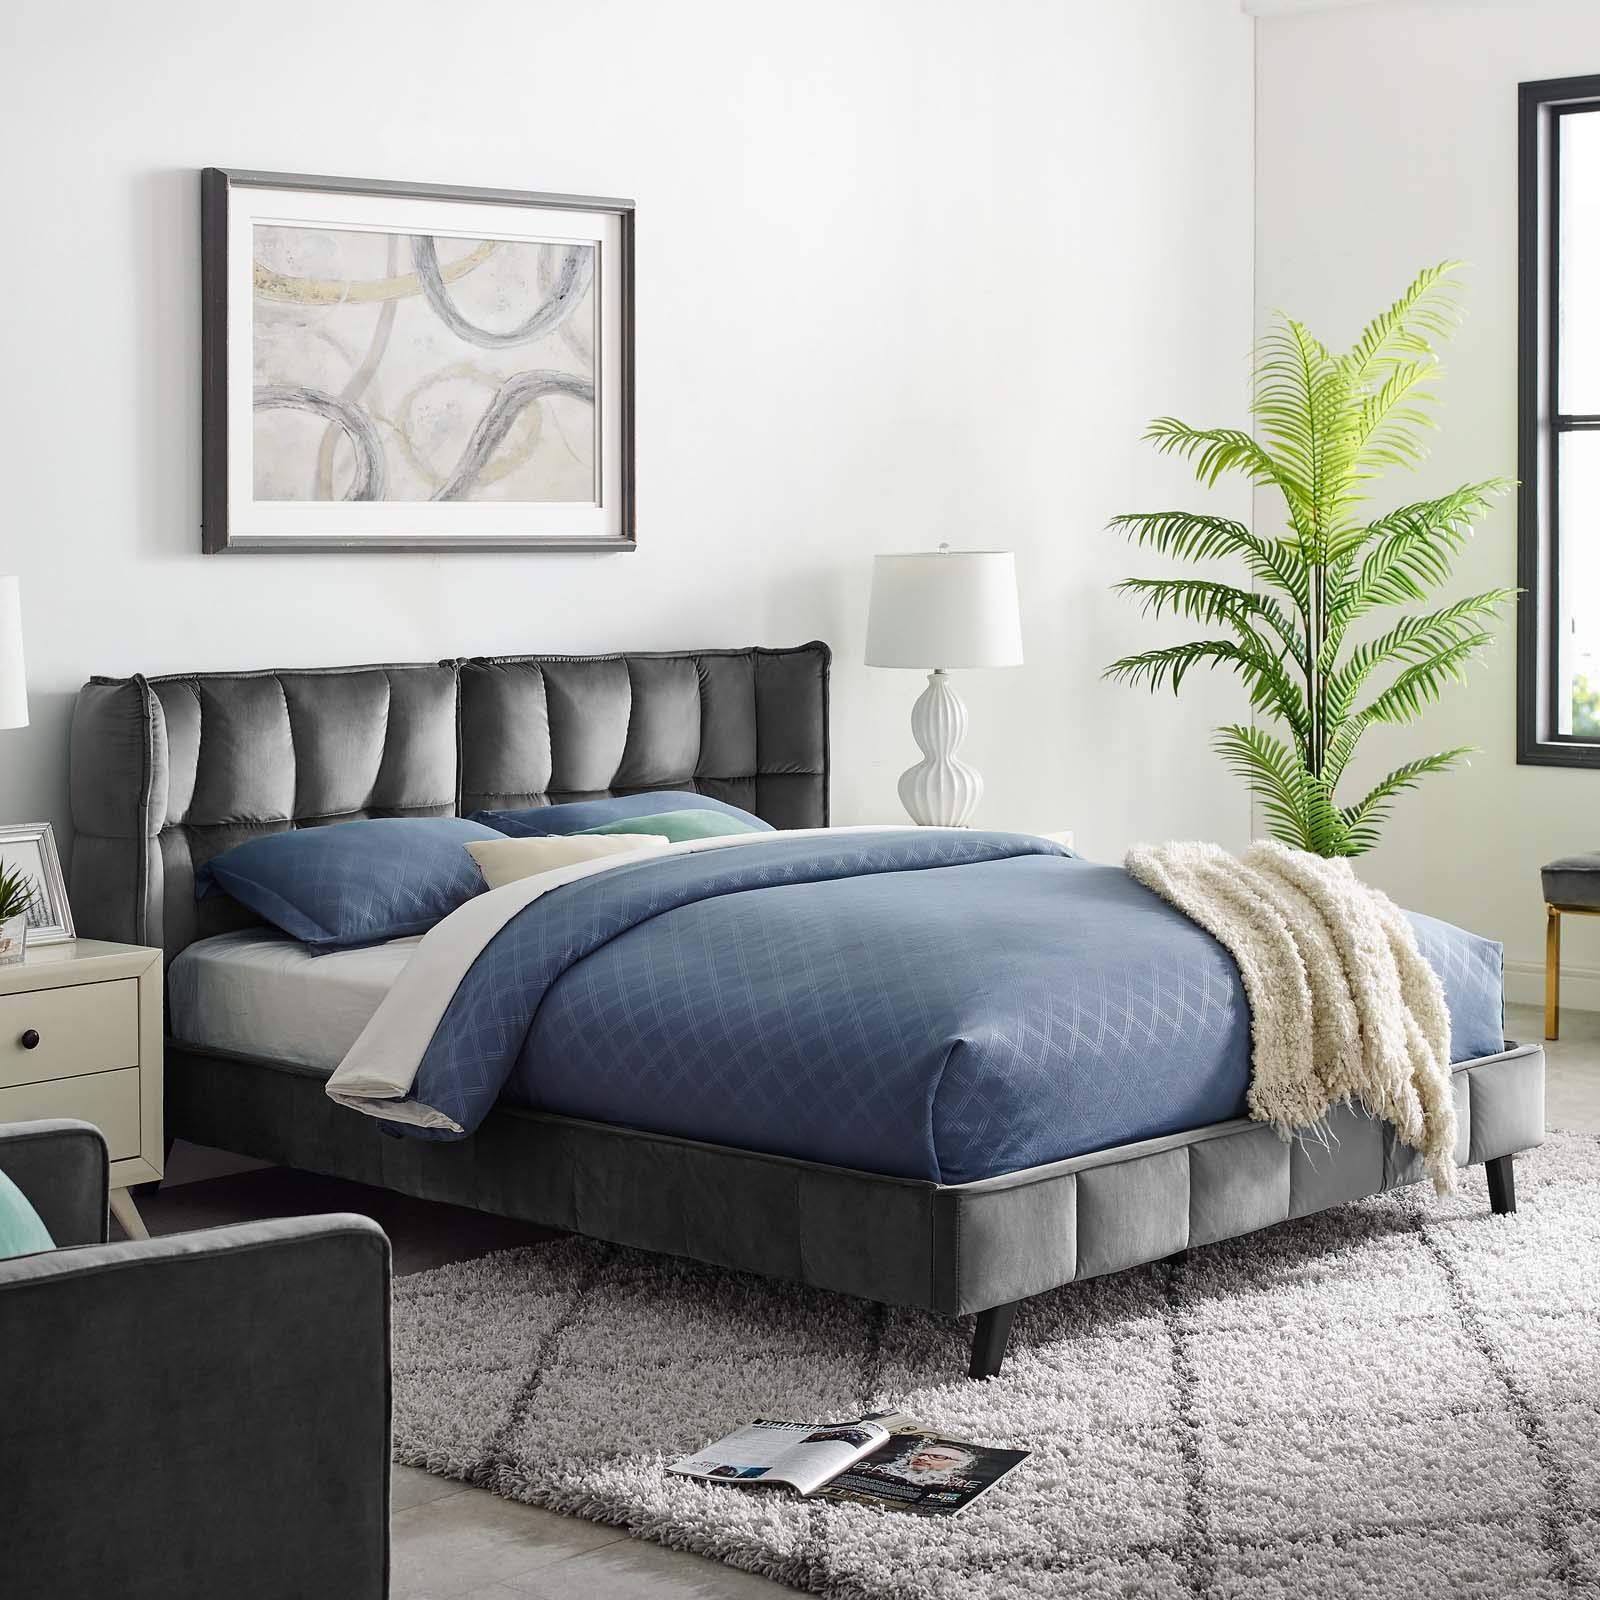 Modway MOD-6081-GRY Makenna Queen Upholstered Velvet Platform Bed, Gray by Modway